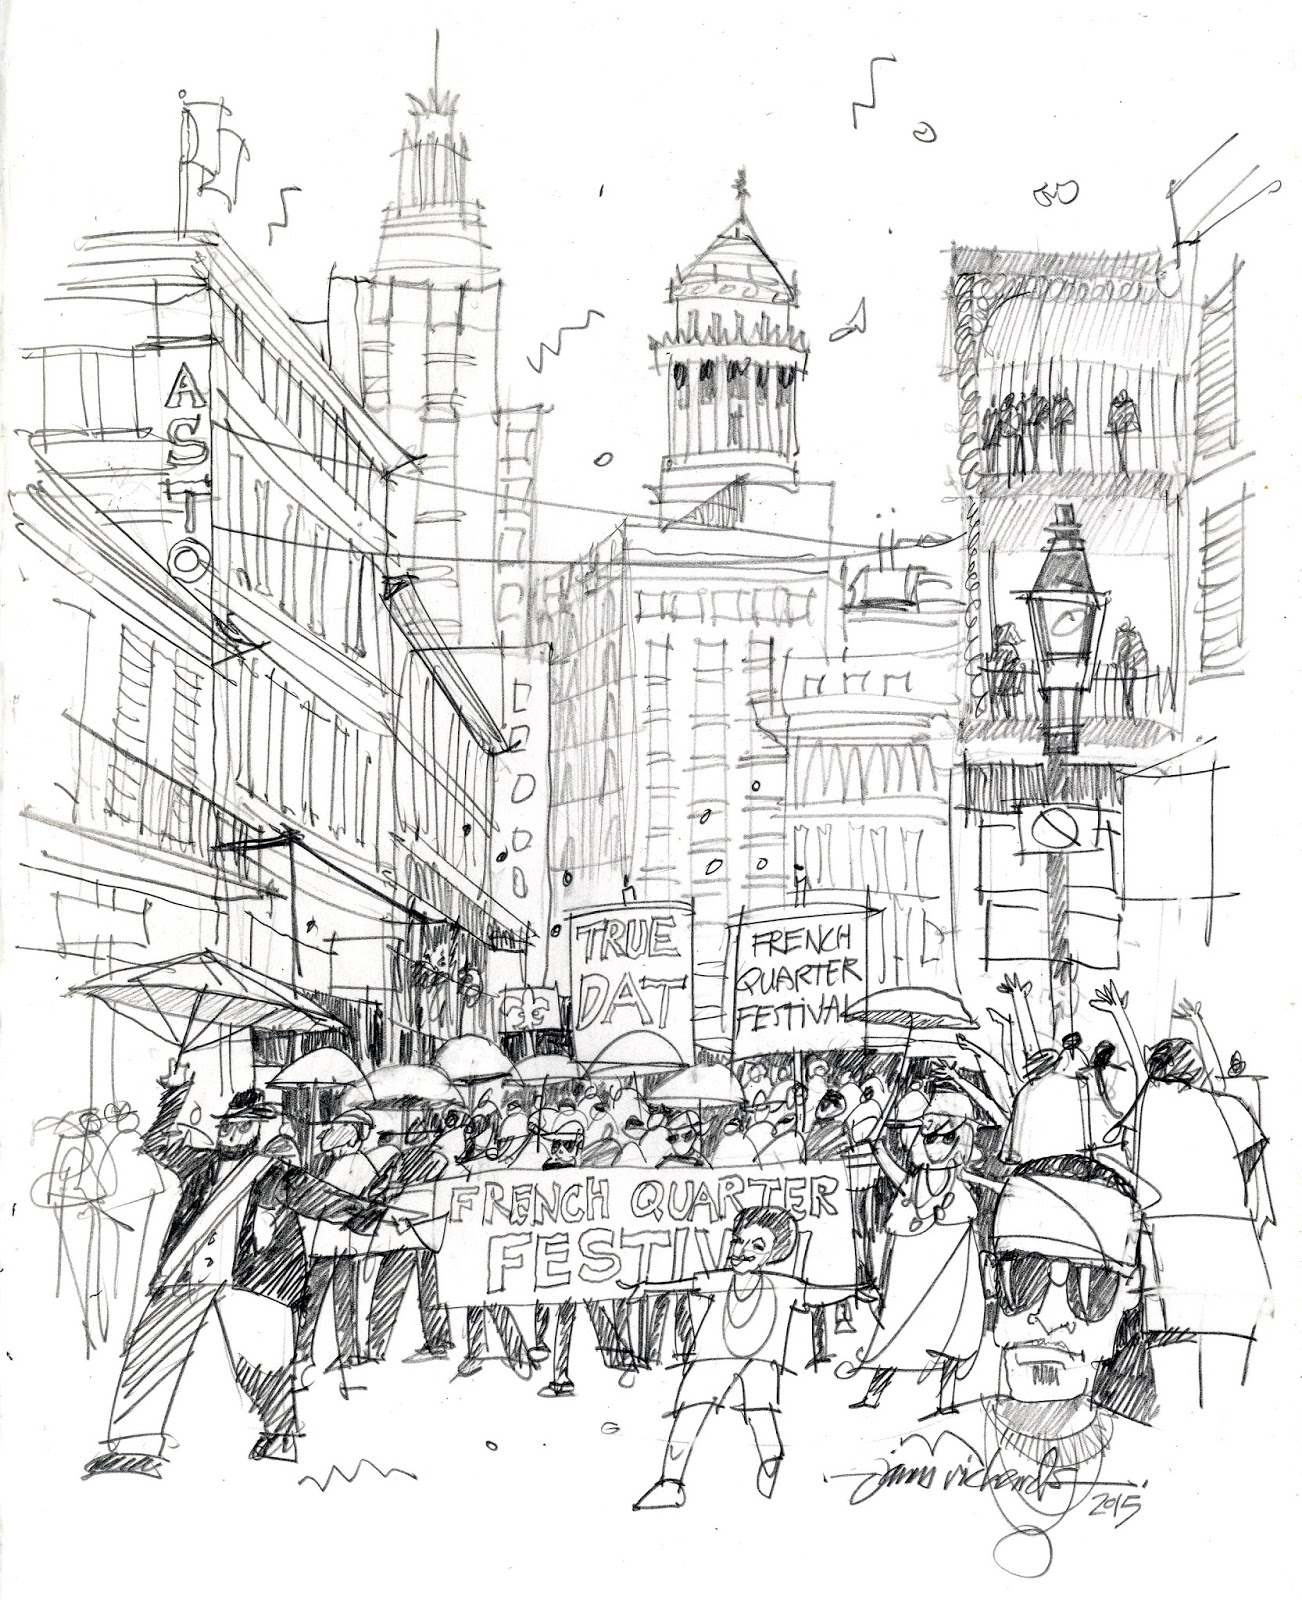 Buildings Drawn Before Parade Arrived Then Paraders Sketched In Quickly As They Passed